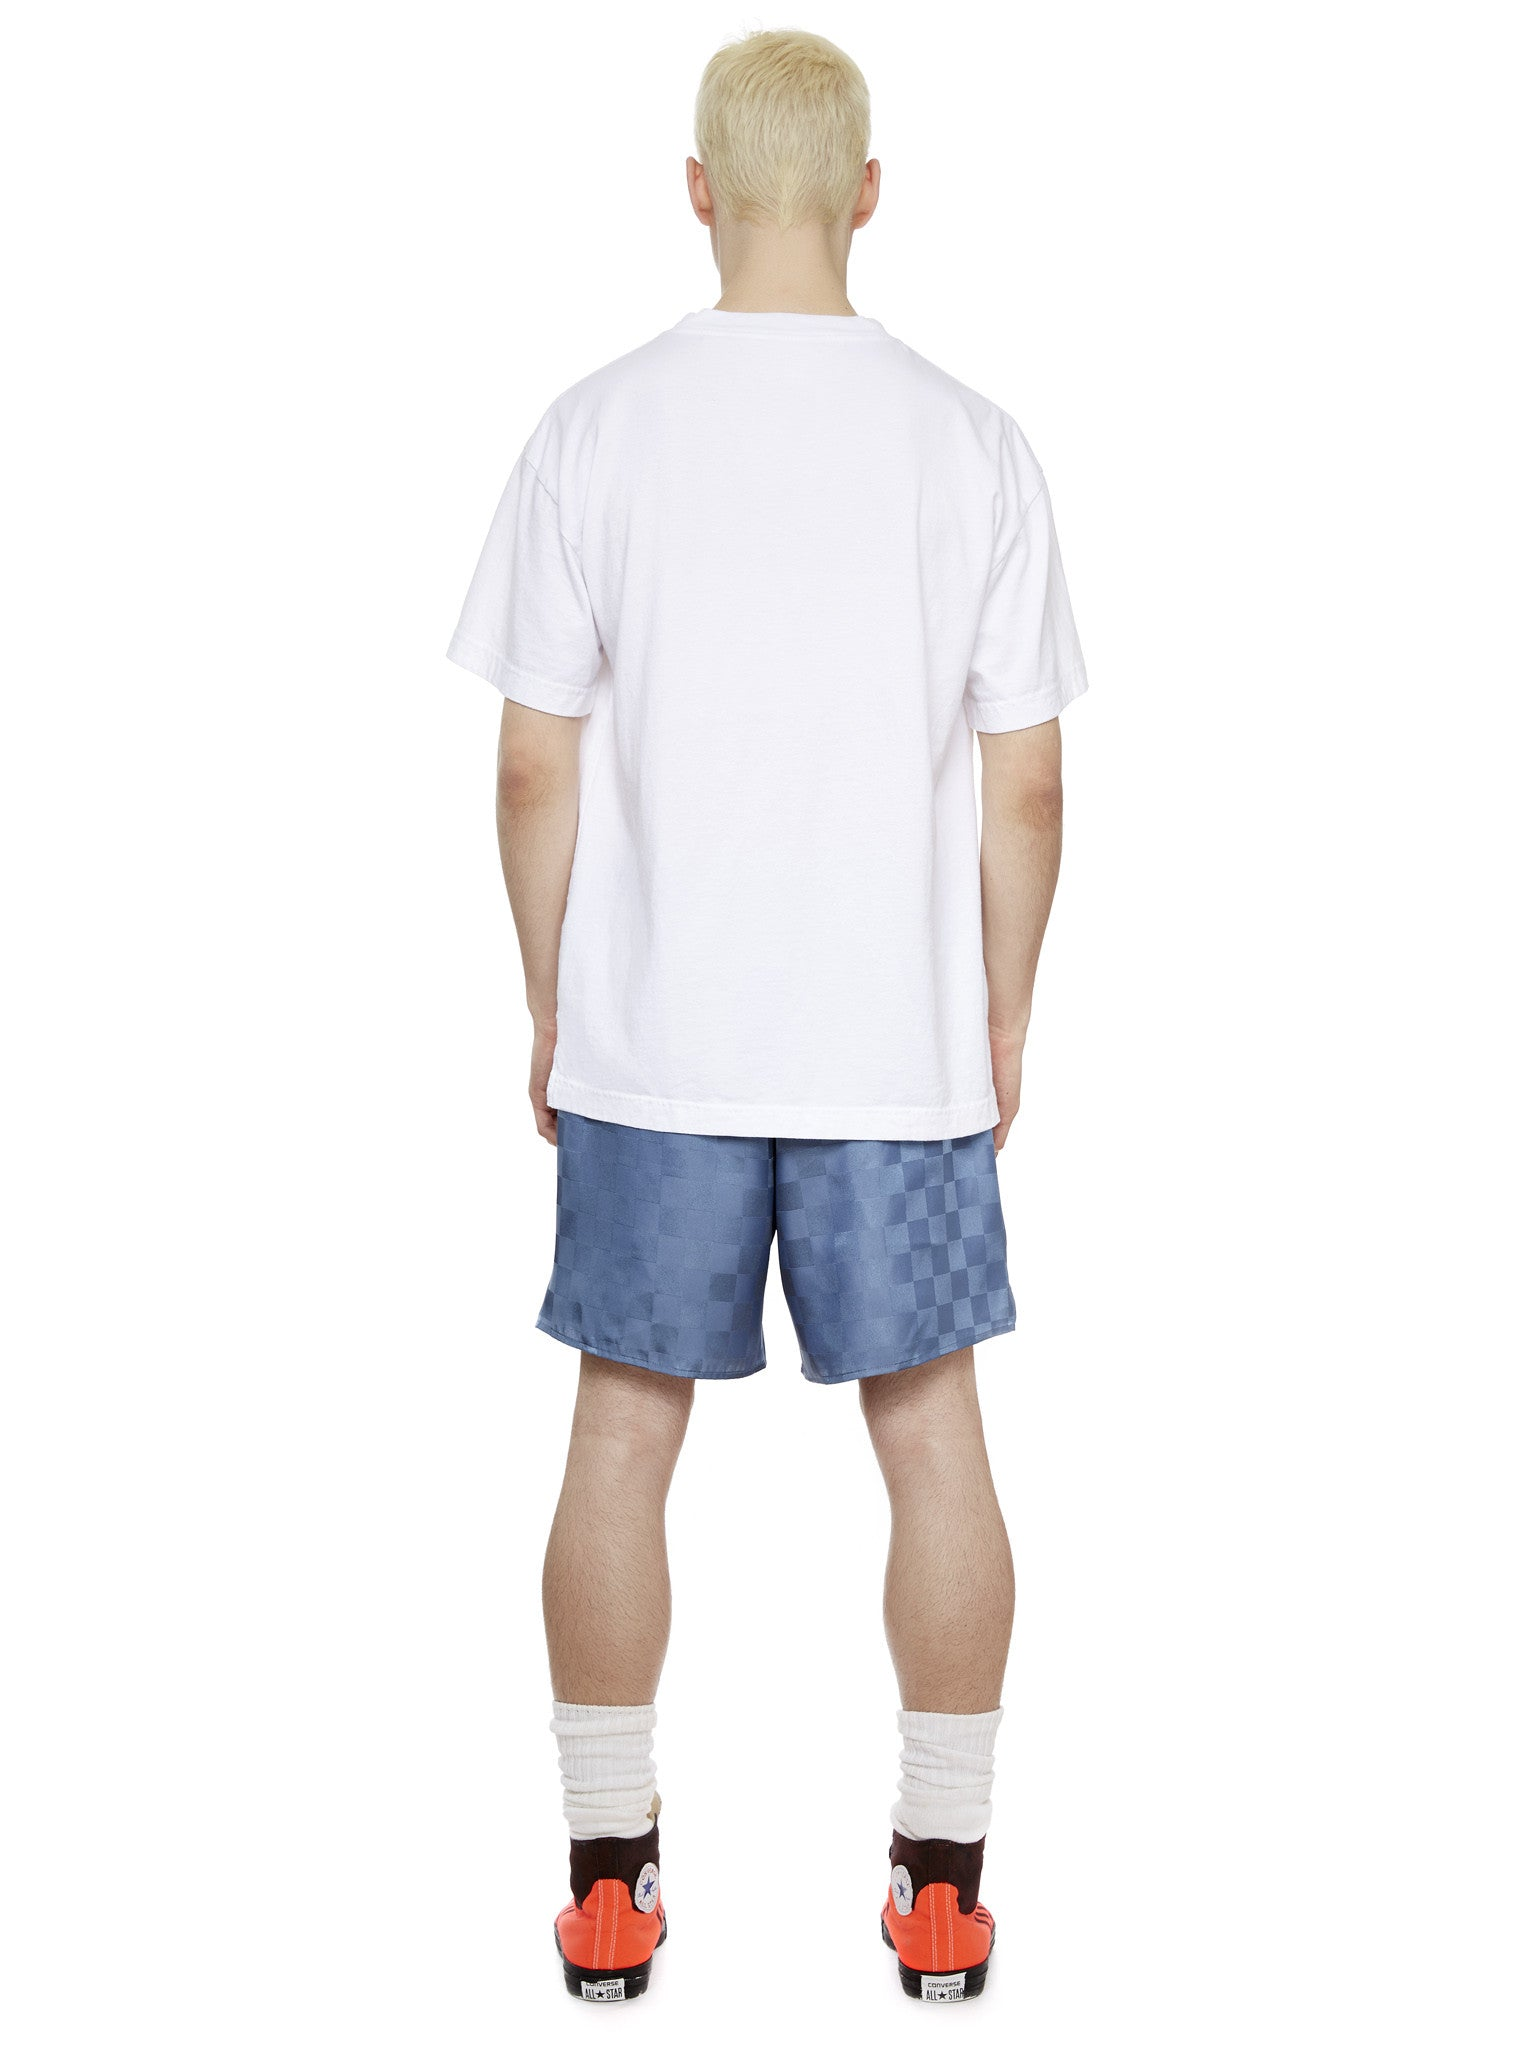 Soccer Short in Blue